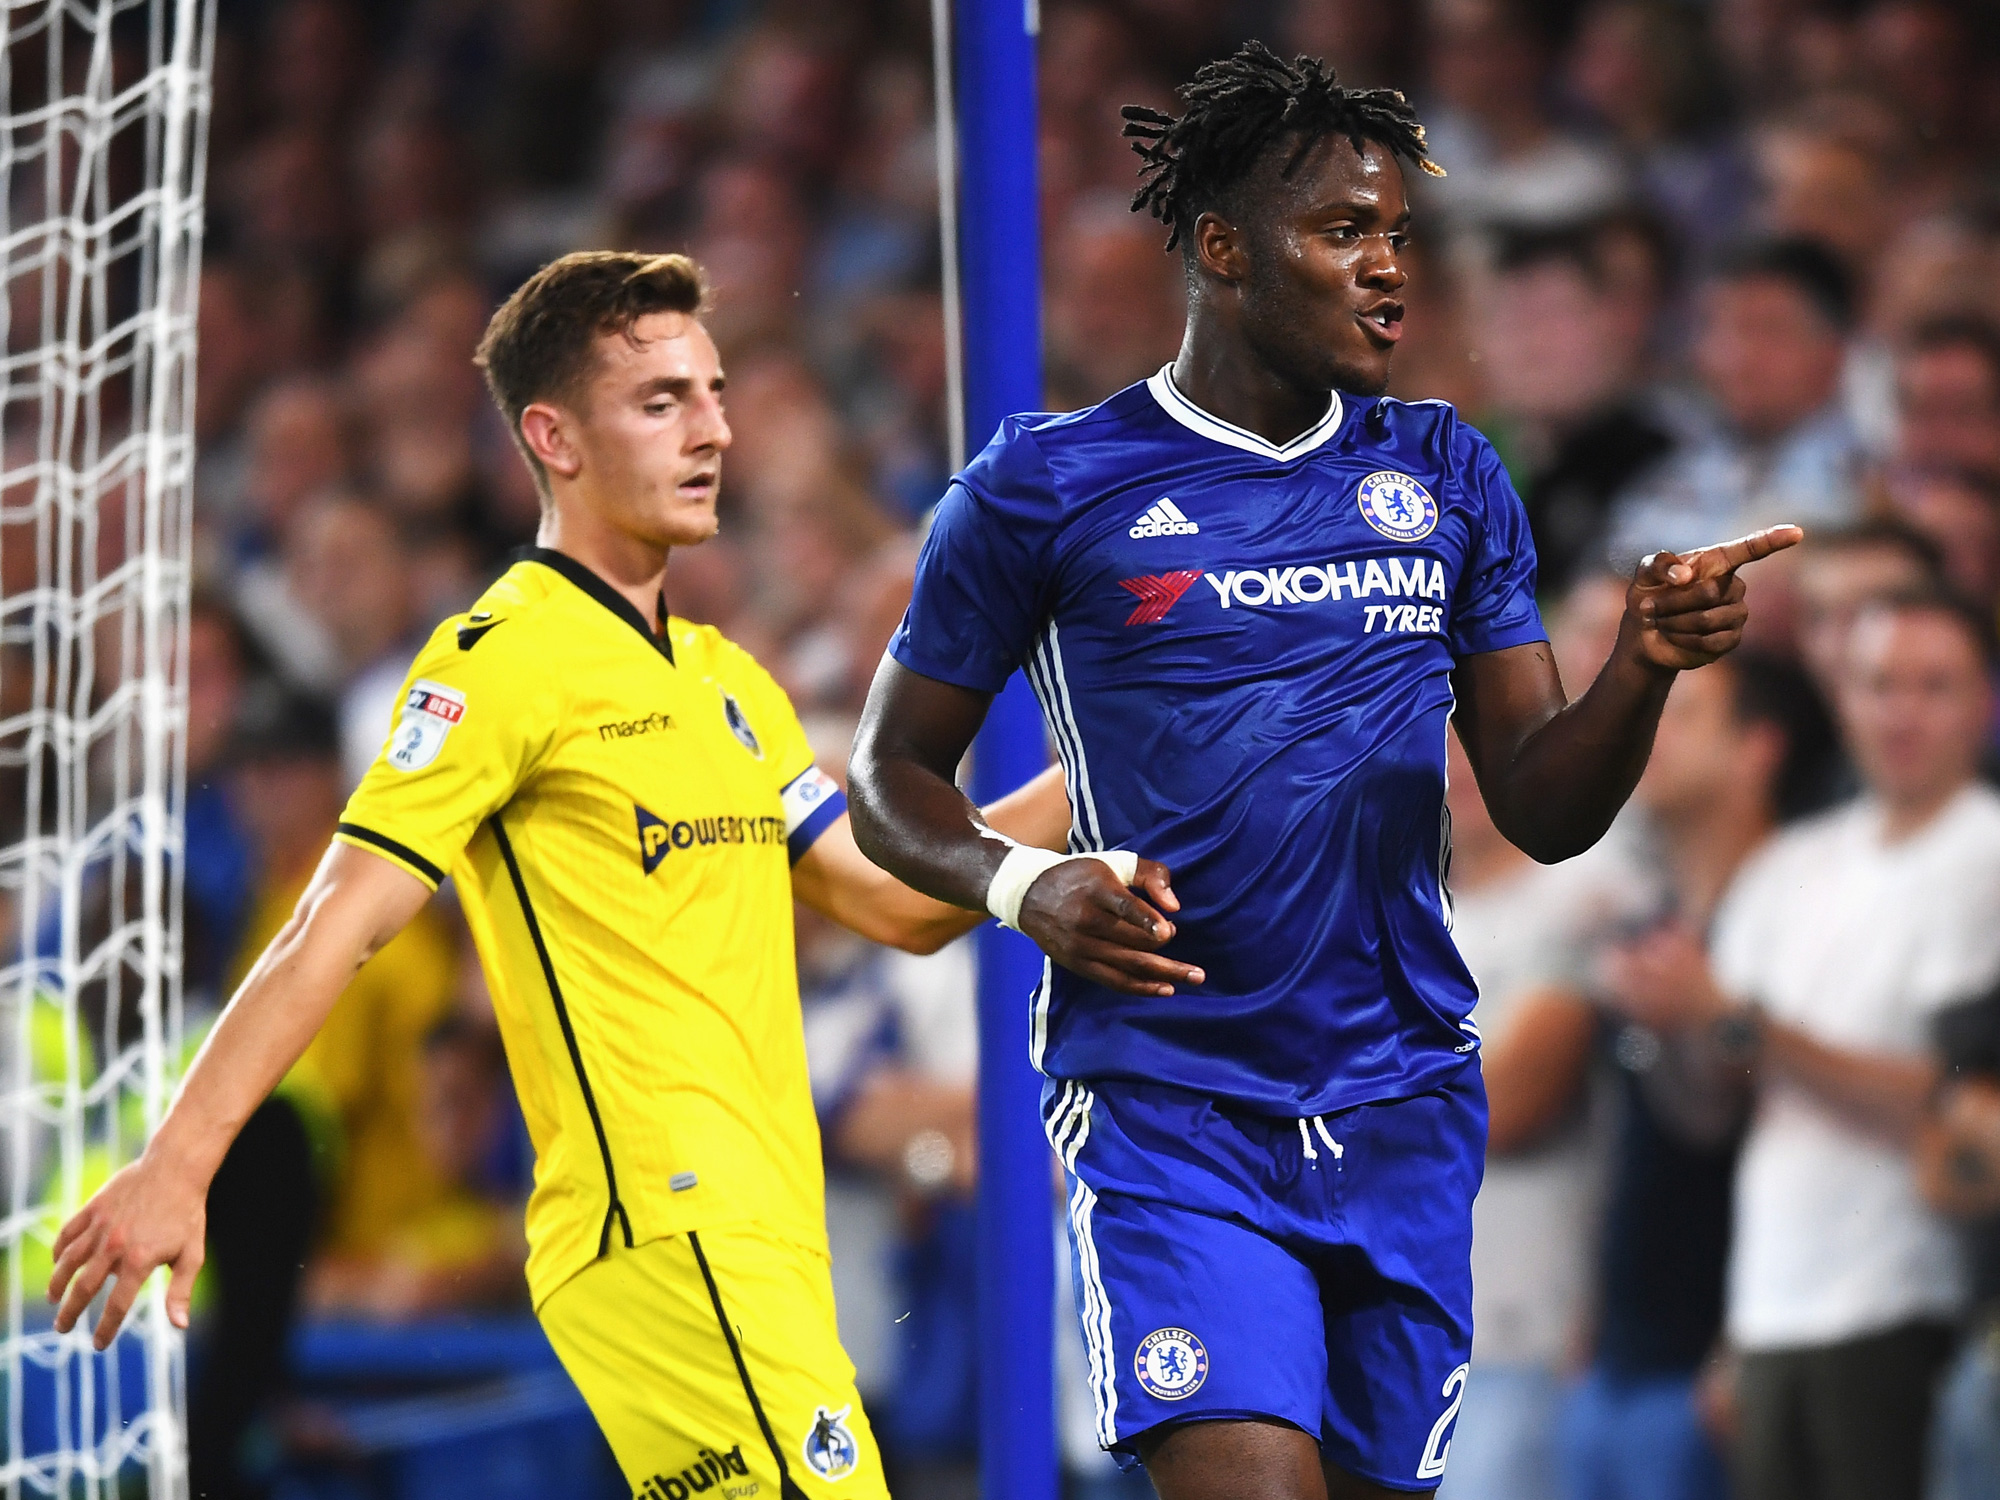 Michy Batshuayi is off to a strong start at Chelsea following his transfer from Marseille